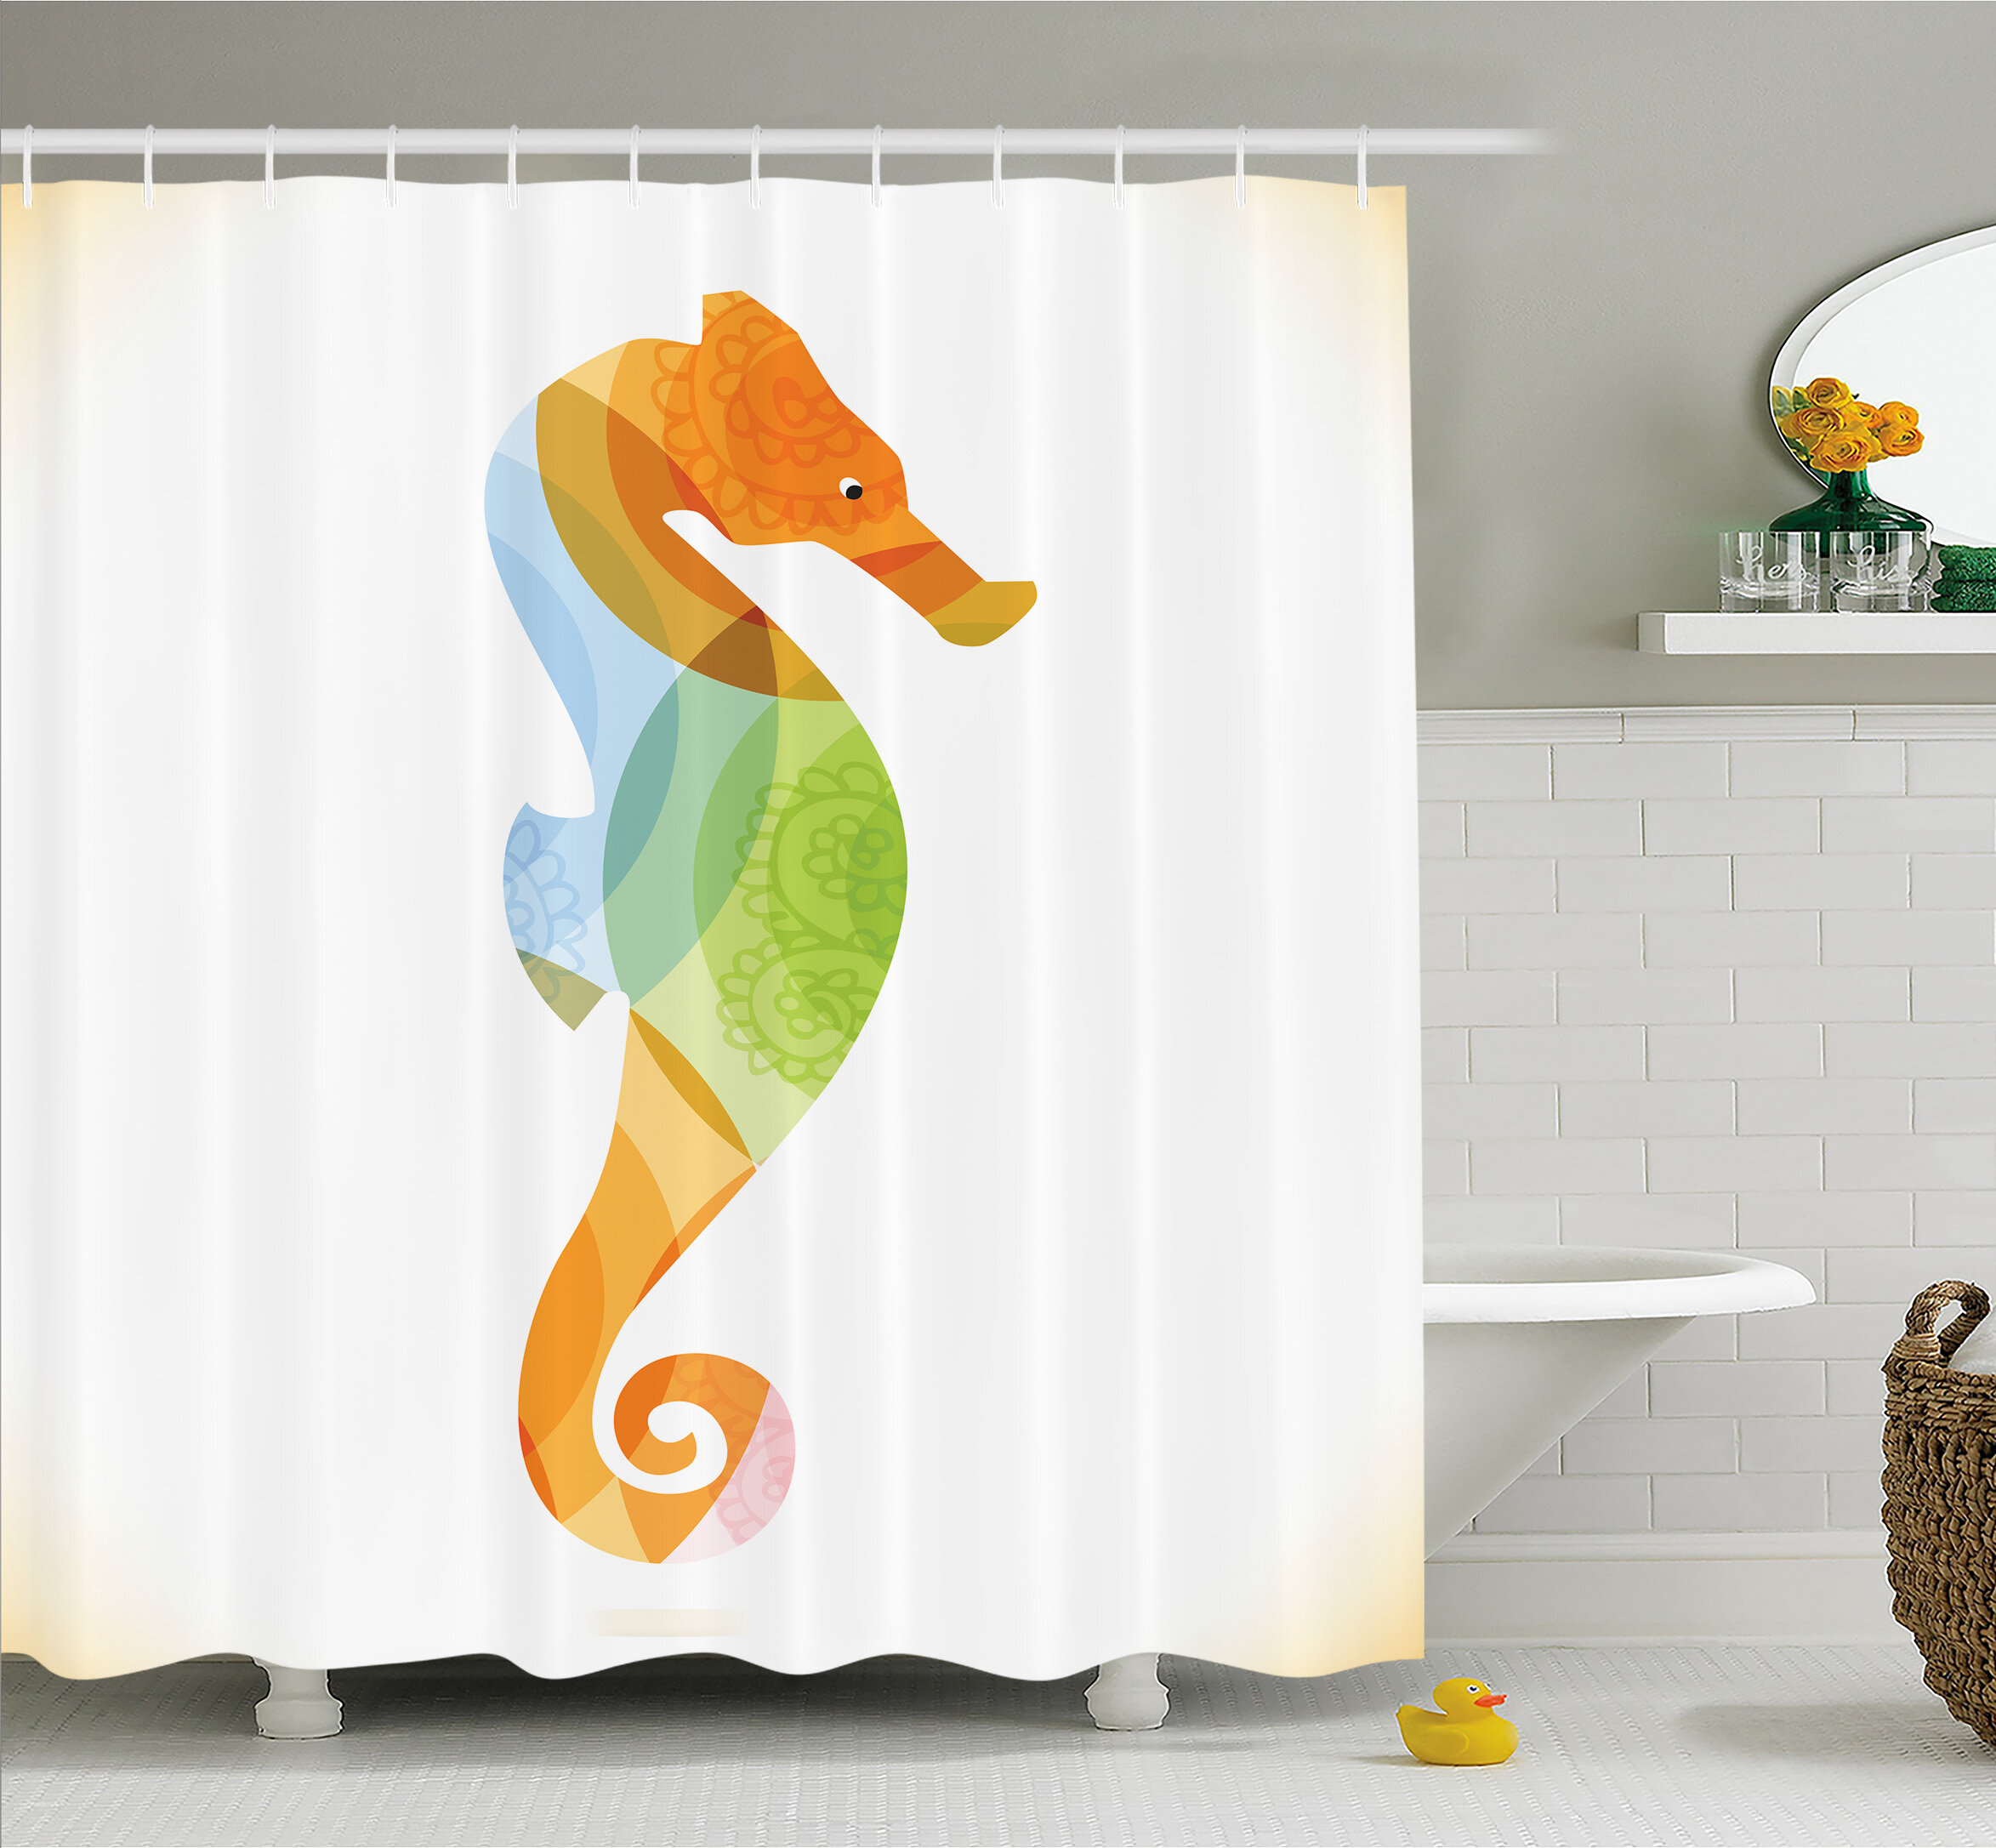 Ambesonne Animal Silhouette Of Sea Creature With Coral Reef Patterns Inside Aquarium Icon Shower Curtain Set